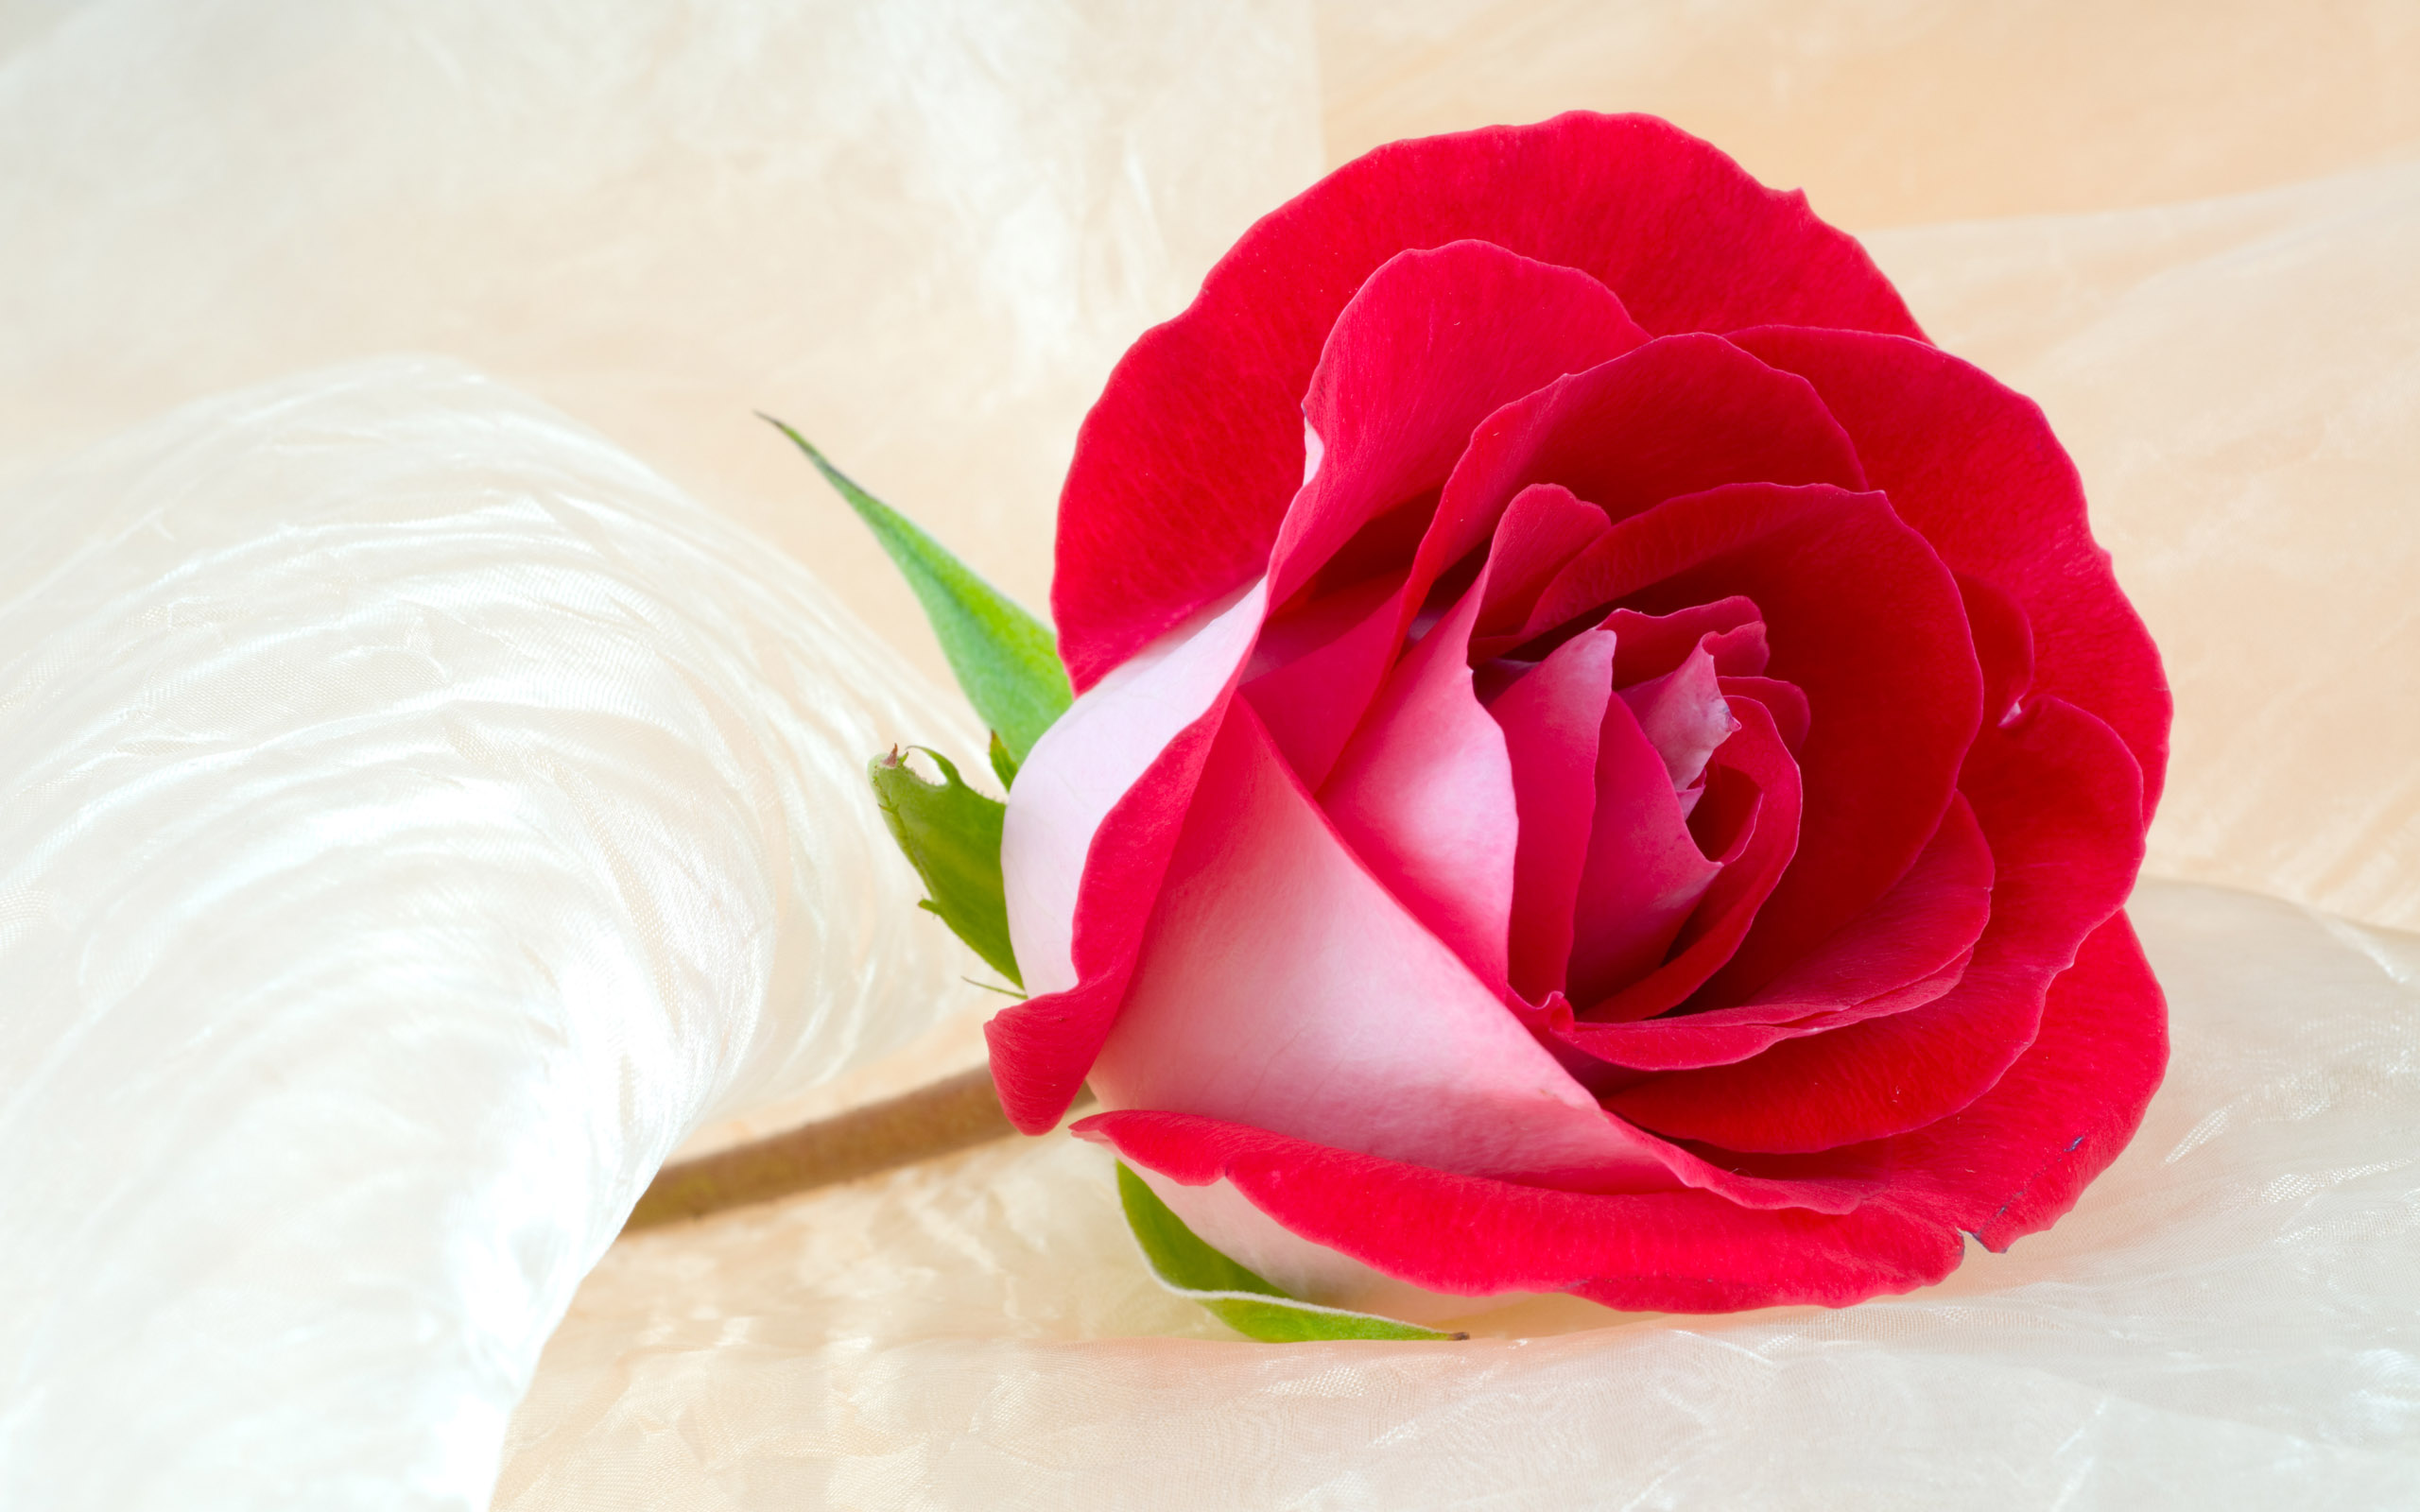 Rose Flower Images Hd Background 2 HD Wallpapers